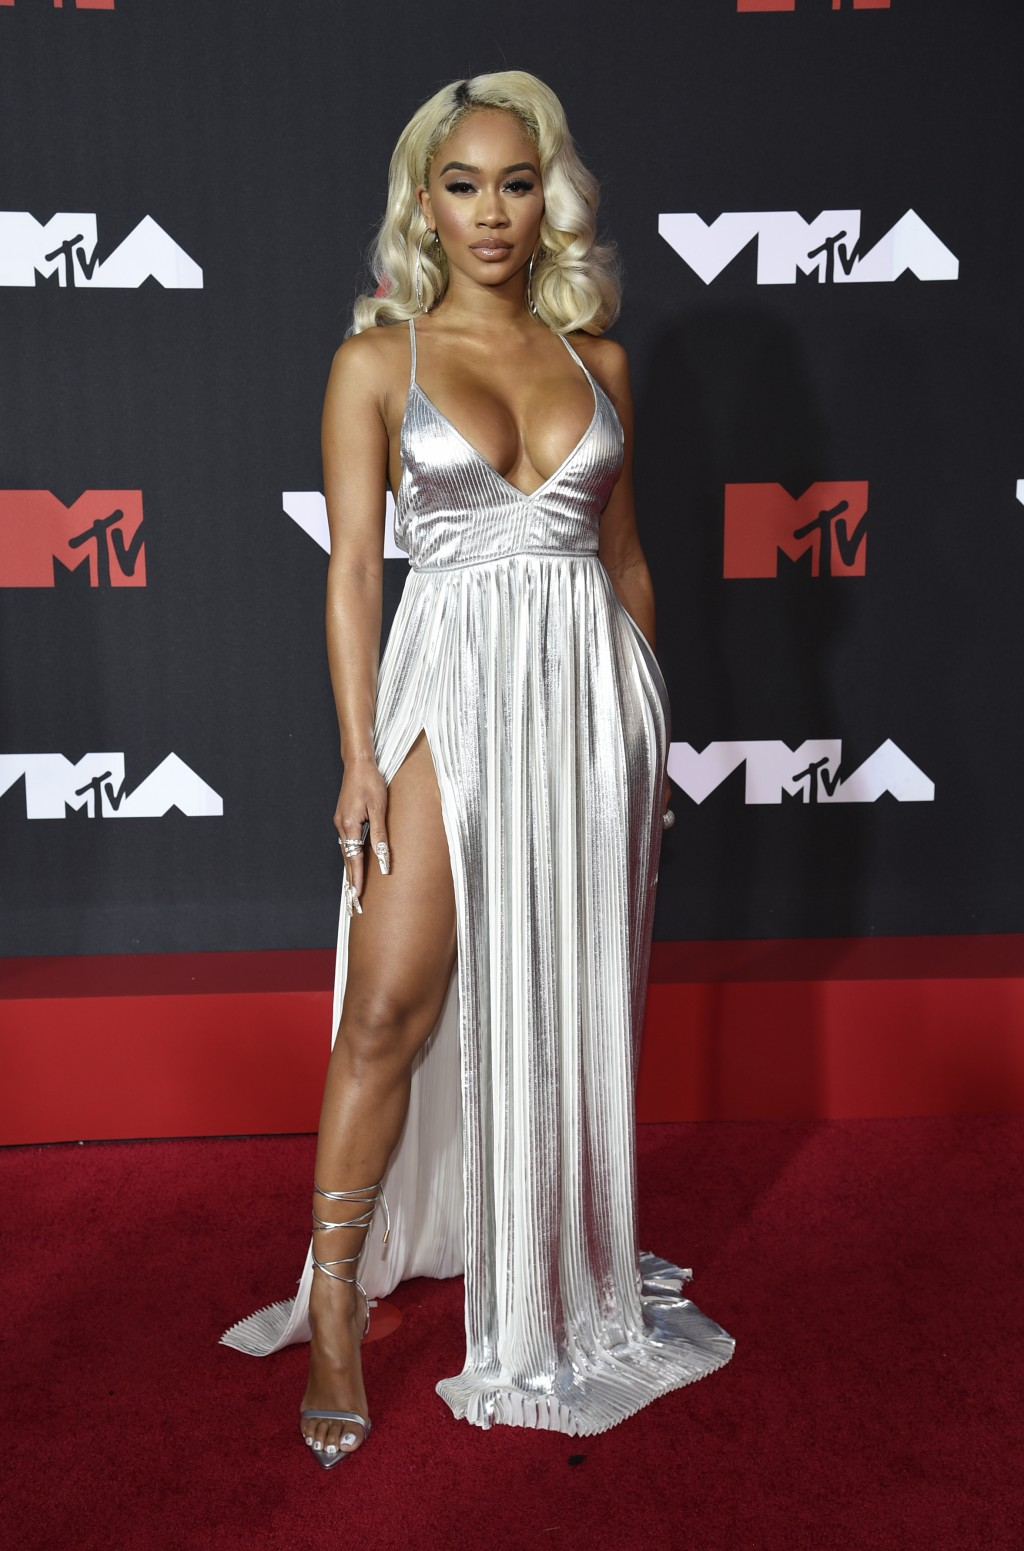 Saweetie arrives at the MTV Video Music Awards at Barclays Center on Sunday, Sept. 12, 2021, in New York. (Photo by Evan Agostini/Invision/AP)